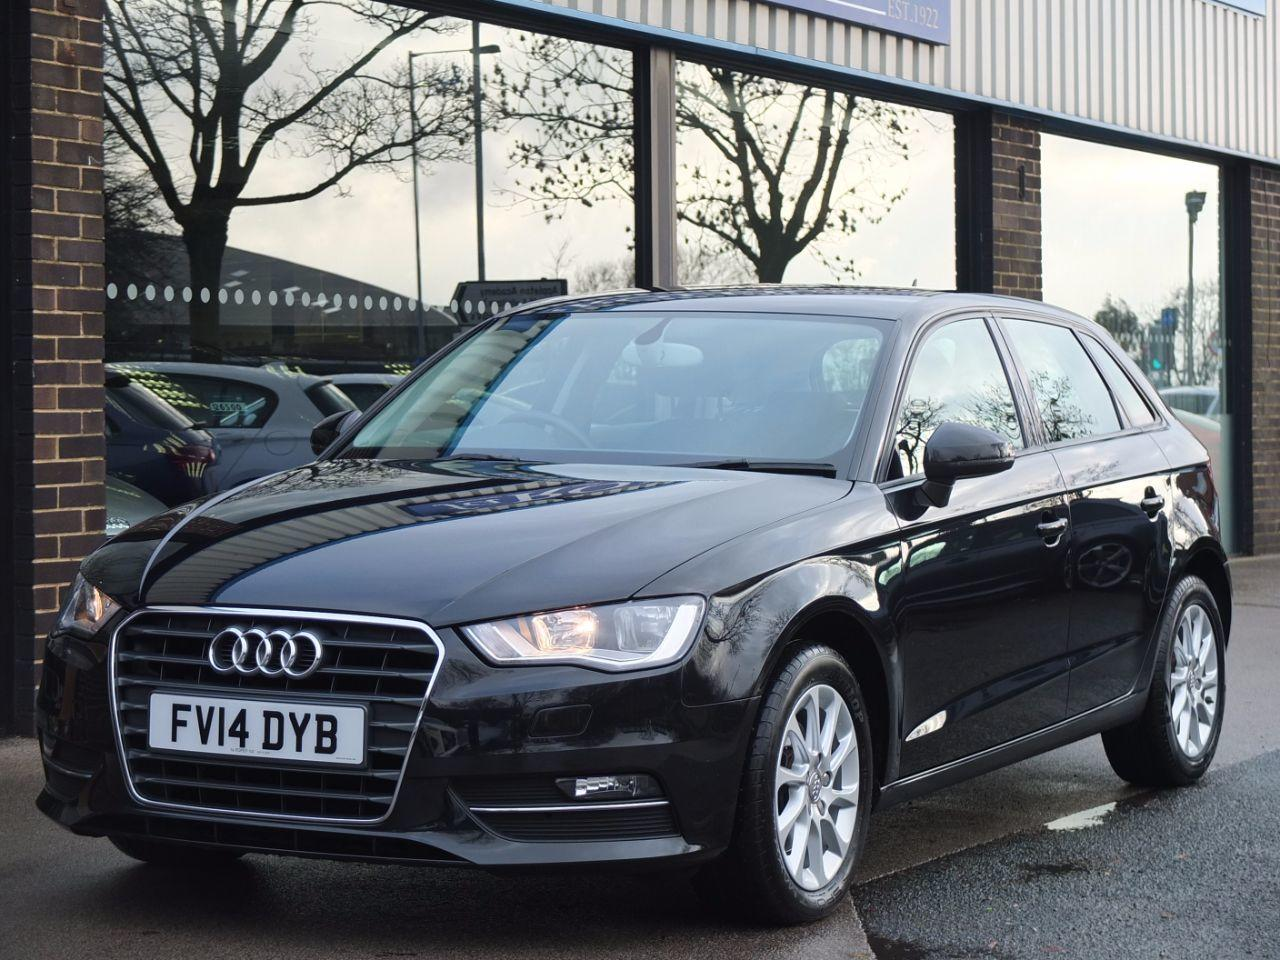 Audi A3 1.6 TDI SE Sportback NAV 6 Speed Hatchback Diesel Phantom Black Metallic